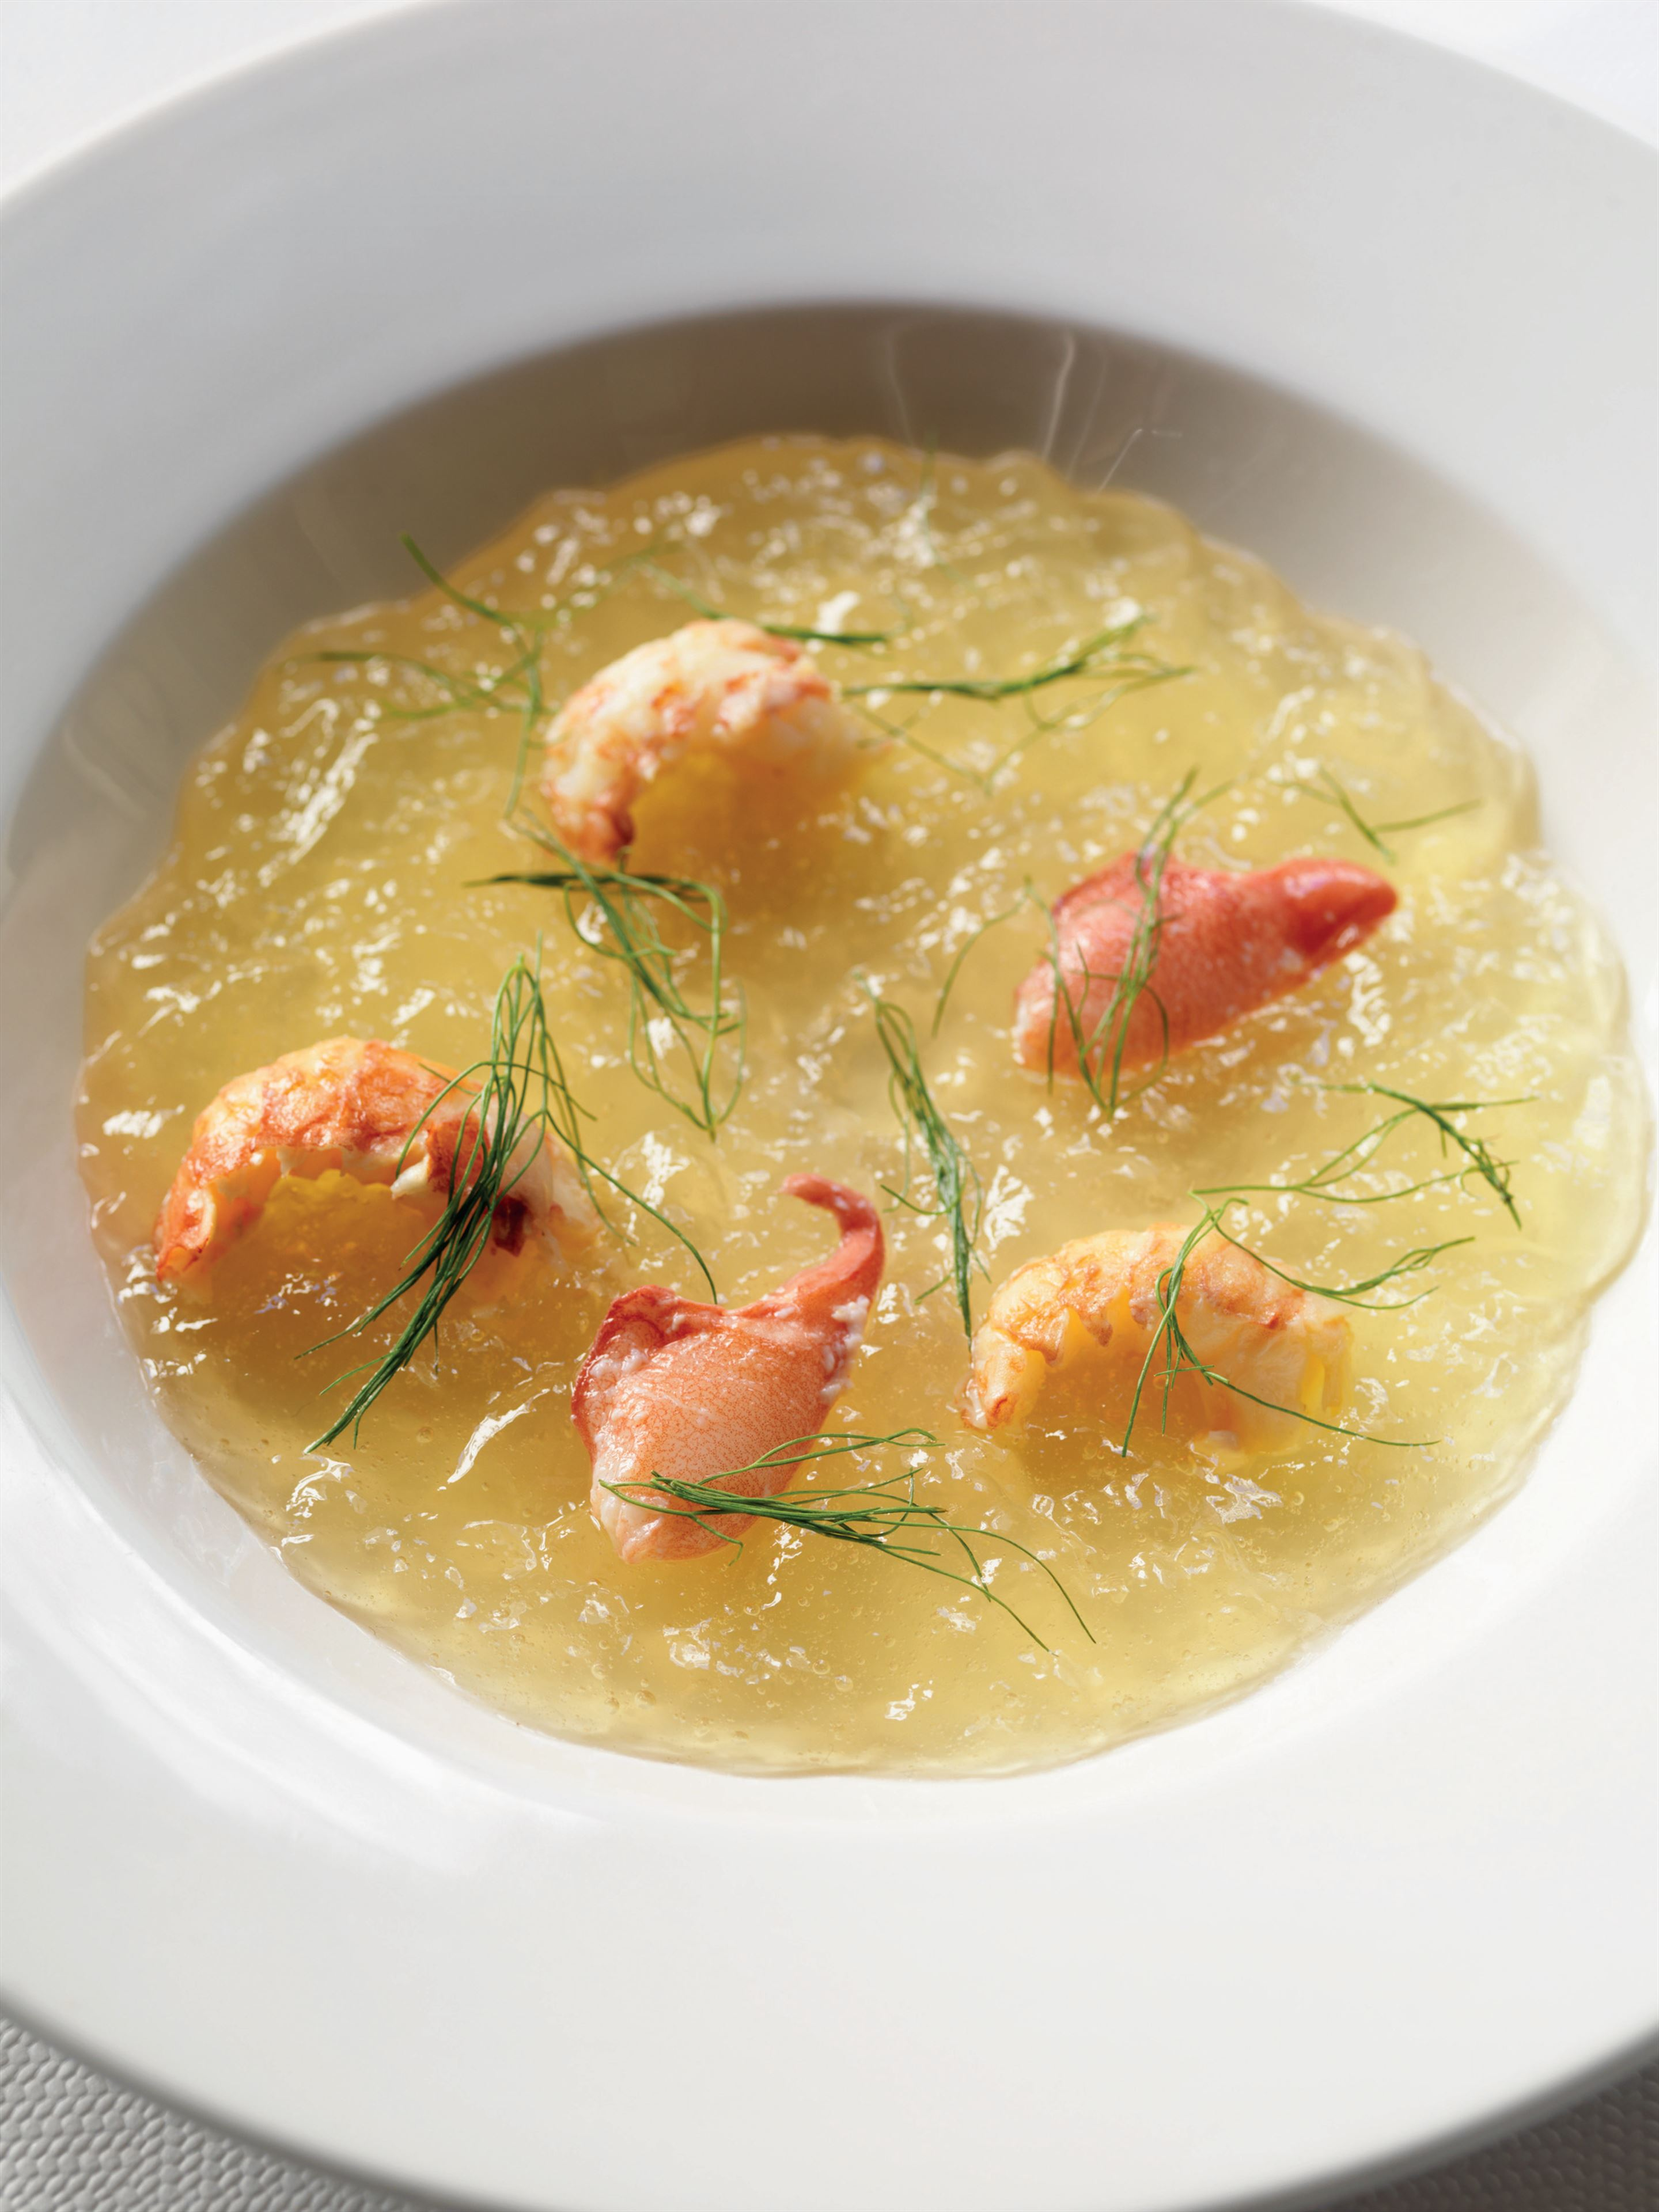 Jellied tomato soup with crayfish and wild fennel